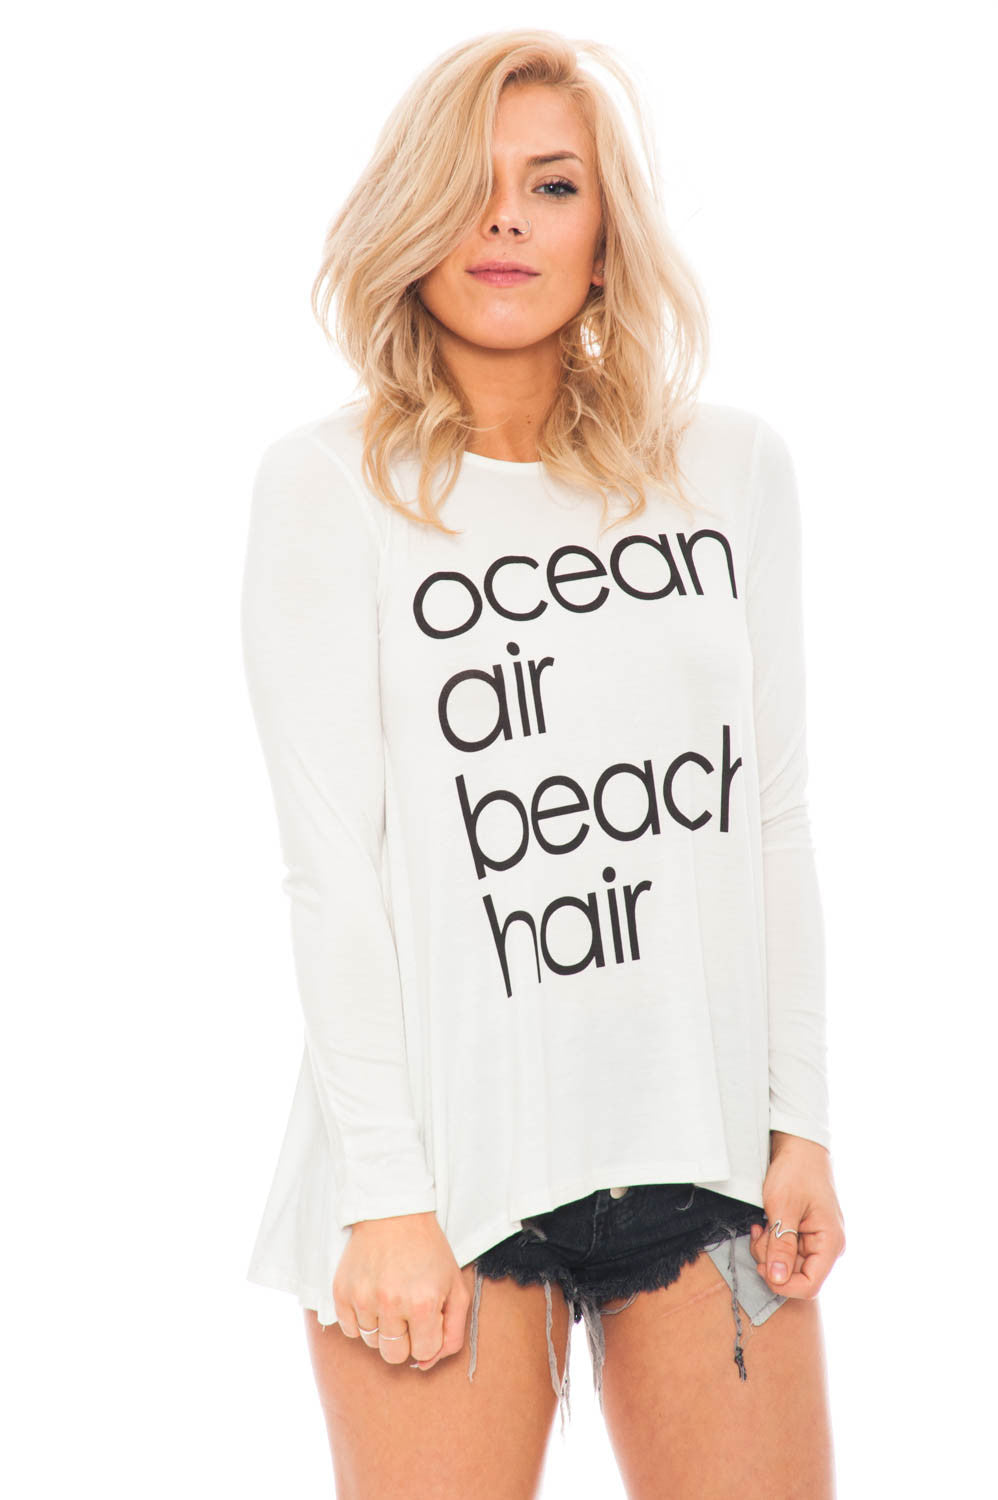 Tee - Ocean Air Beach Hair Top